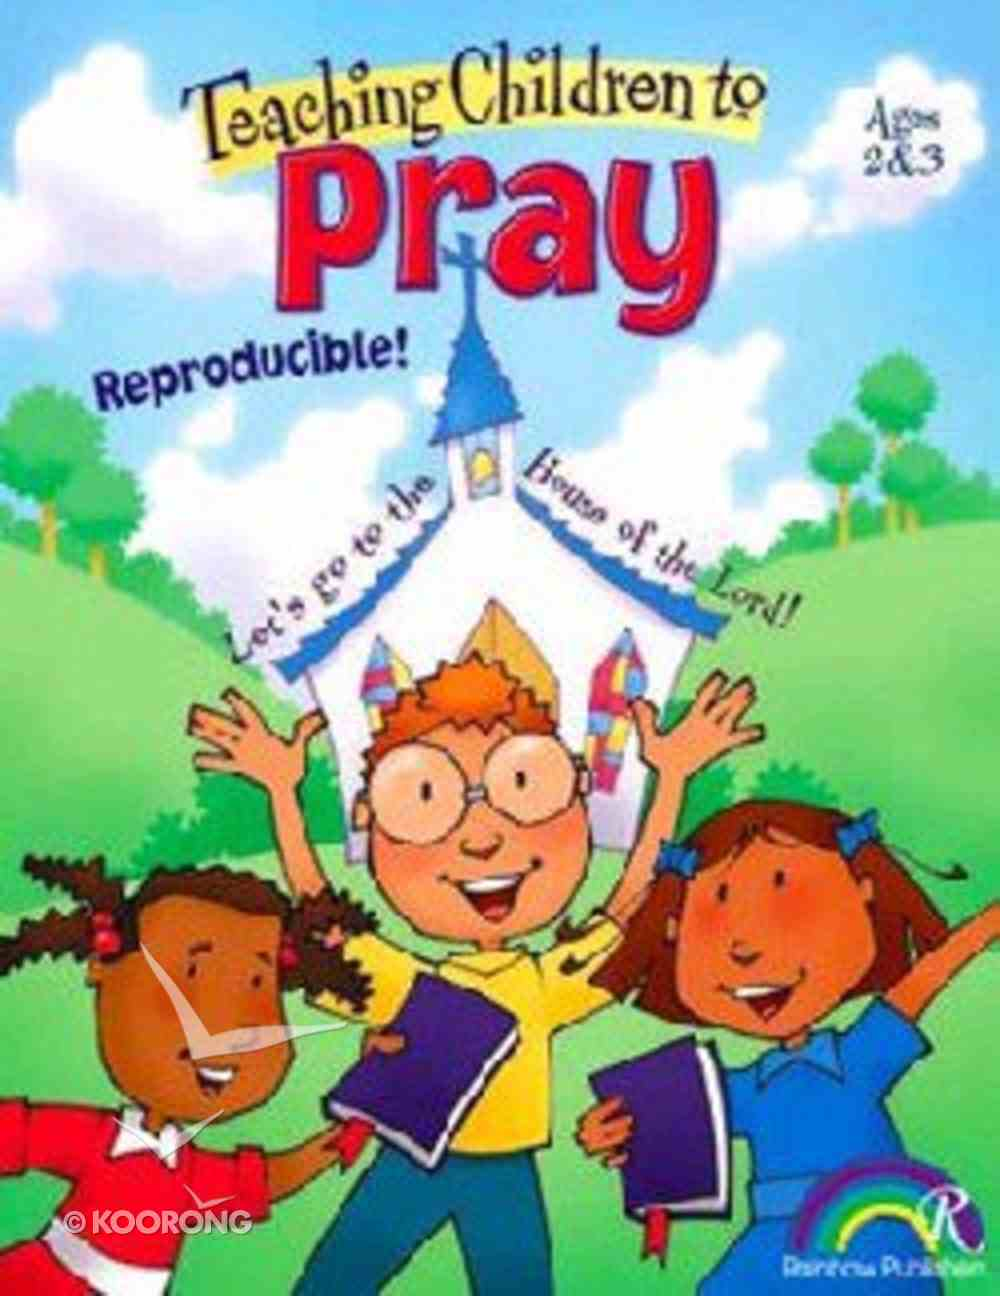 Ages 2 & 3 (Reproducible) (Teaching Children To Pray Series) Paperback